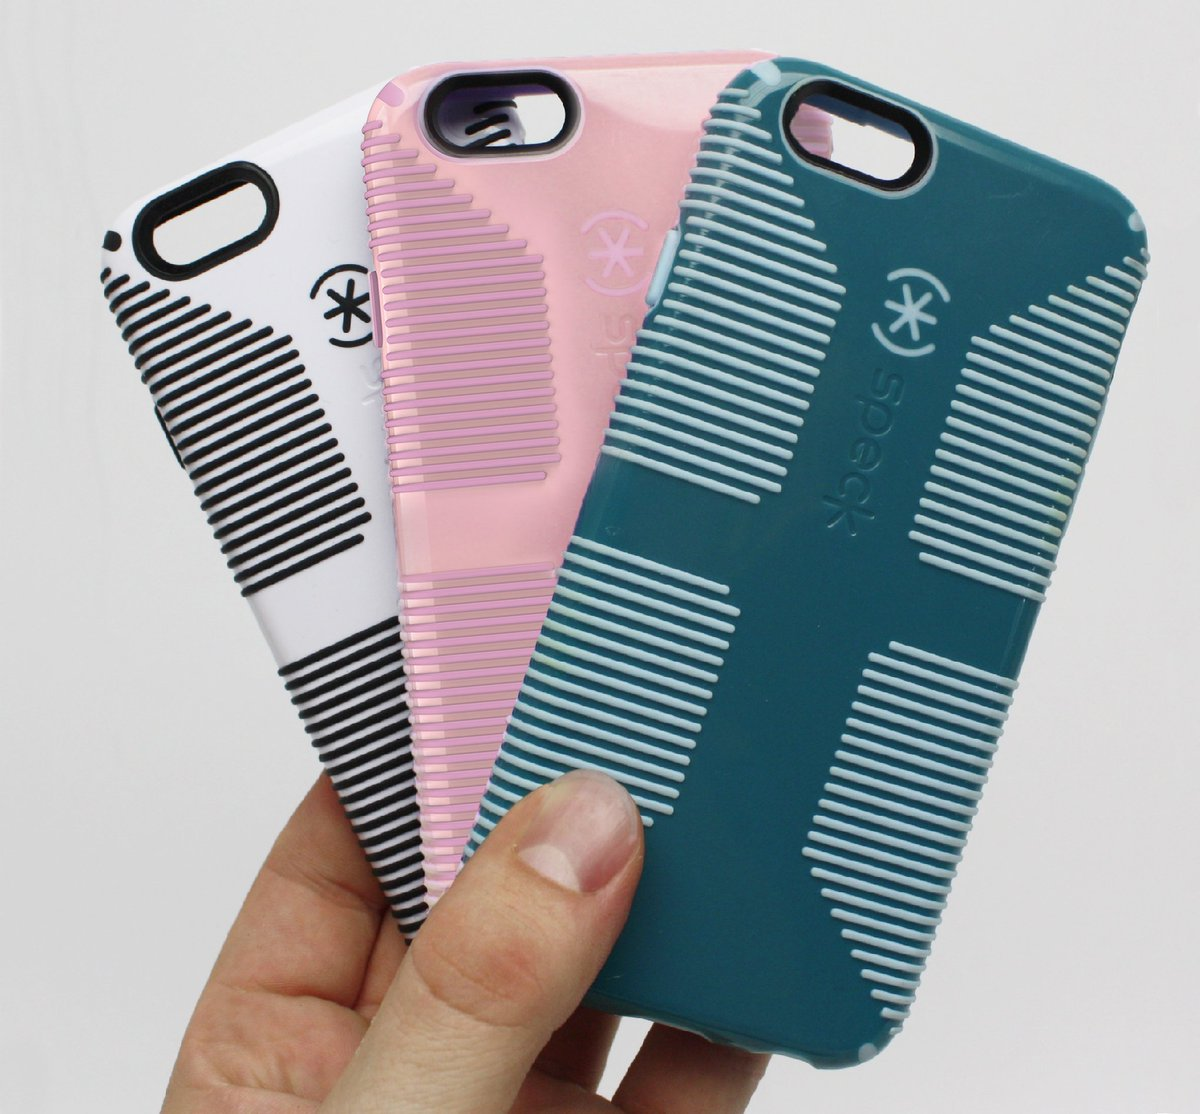 ⚡️FLASH #SPECKSALE!⚡️ 30% off all cases. $5 2-day shipping. 6 hours to save big. Shop now: https://t.co/bOLm7KsJjW https://t.co/Ha1LV0Ao2J